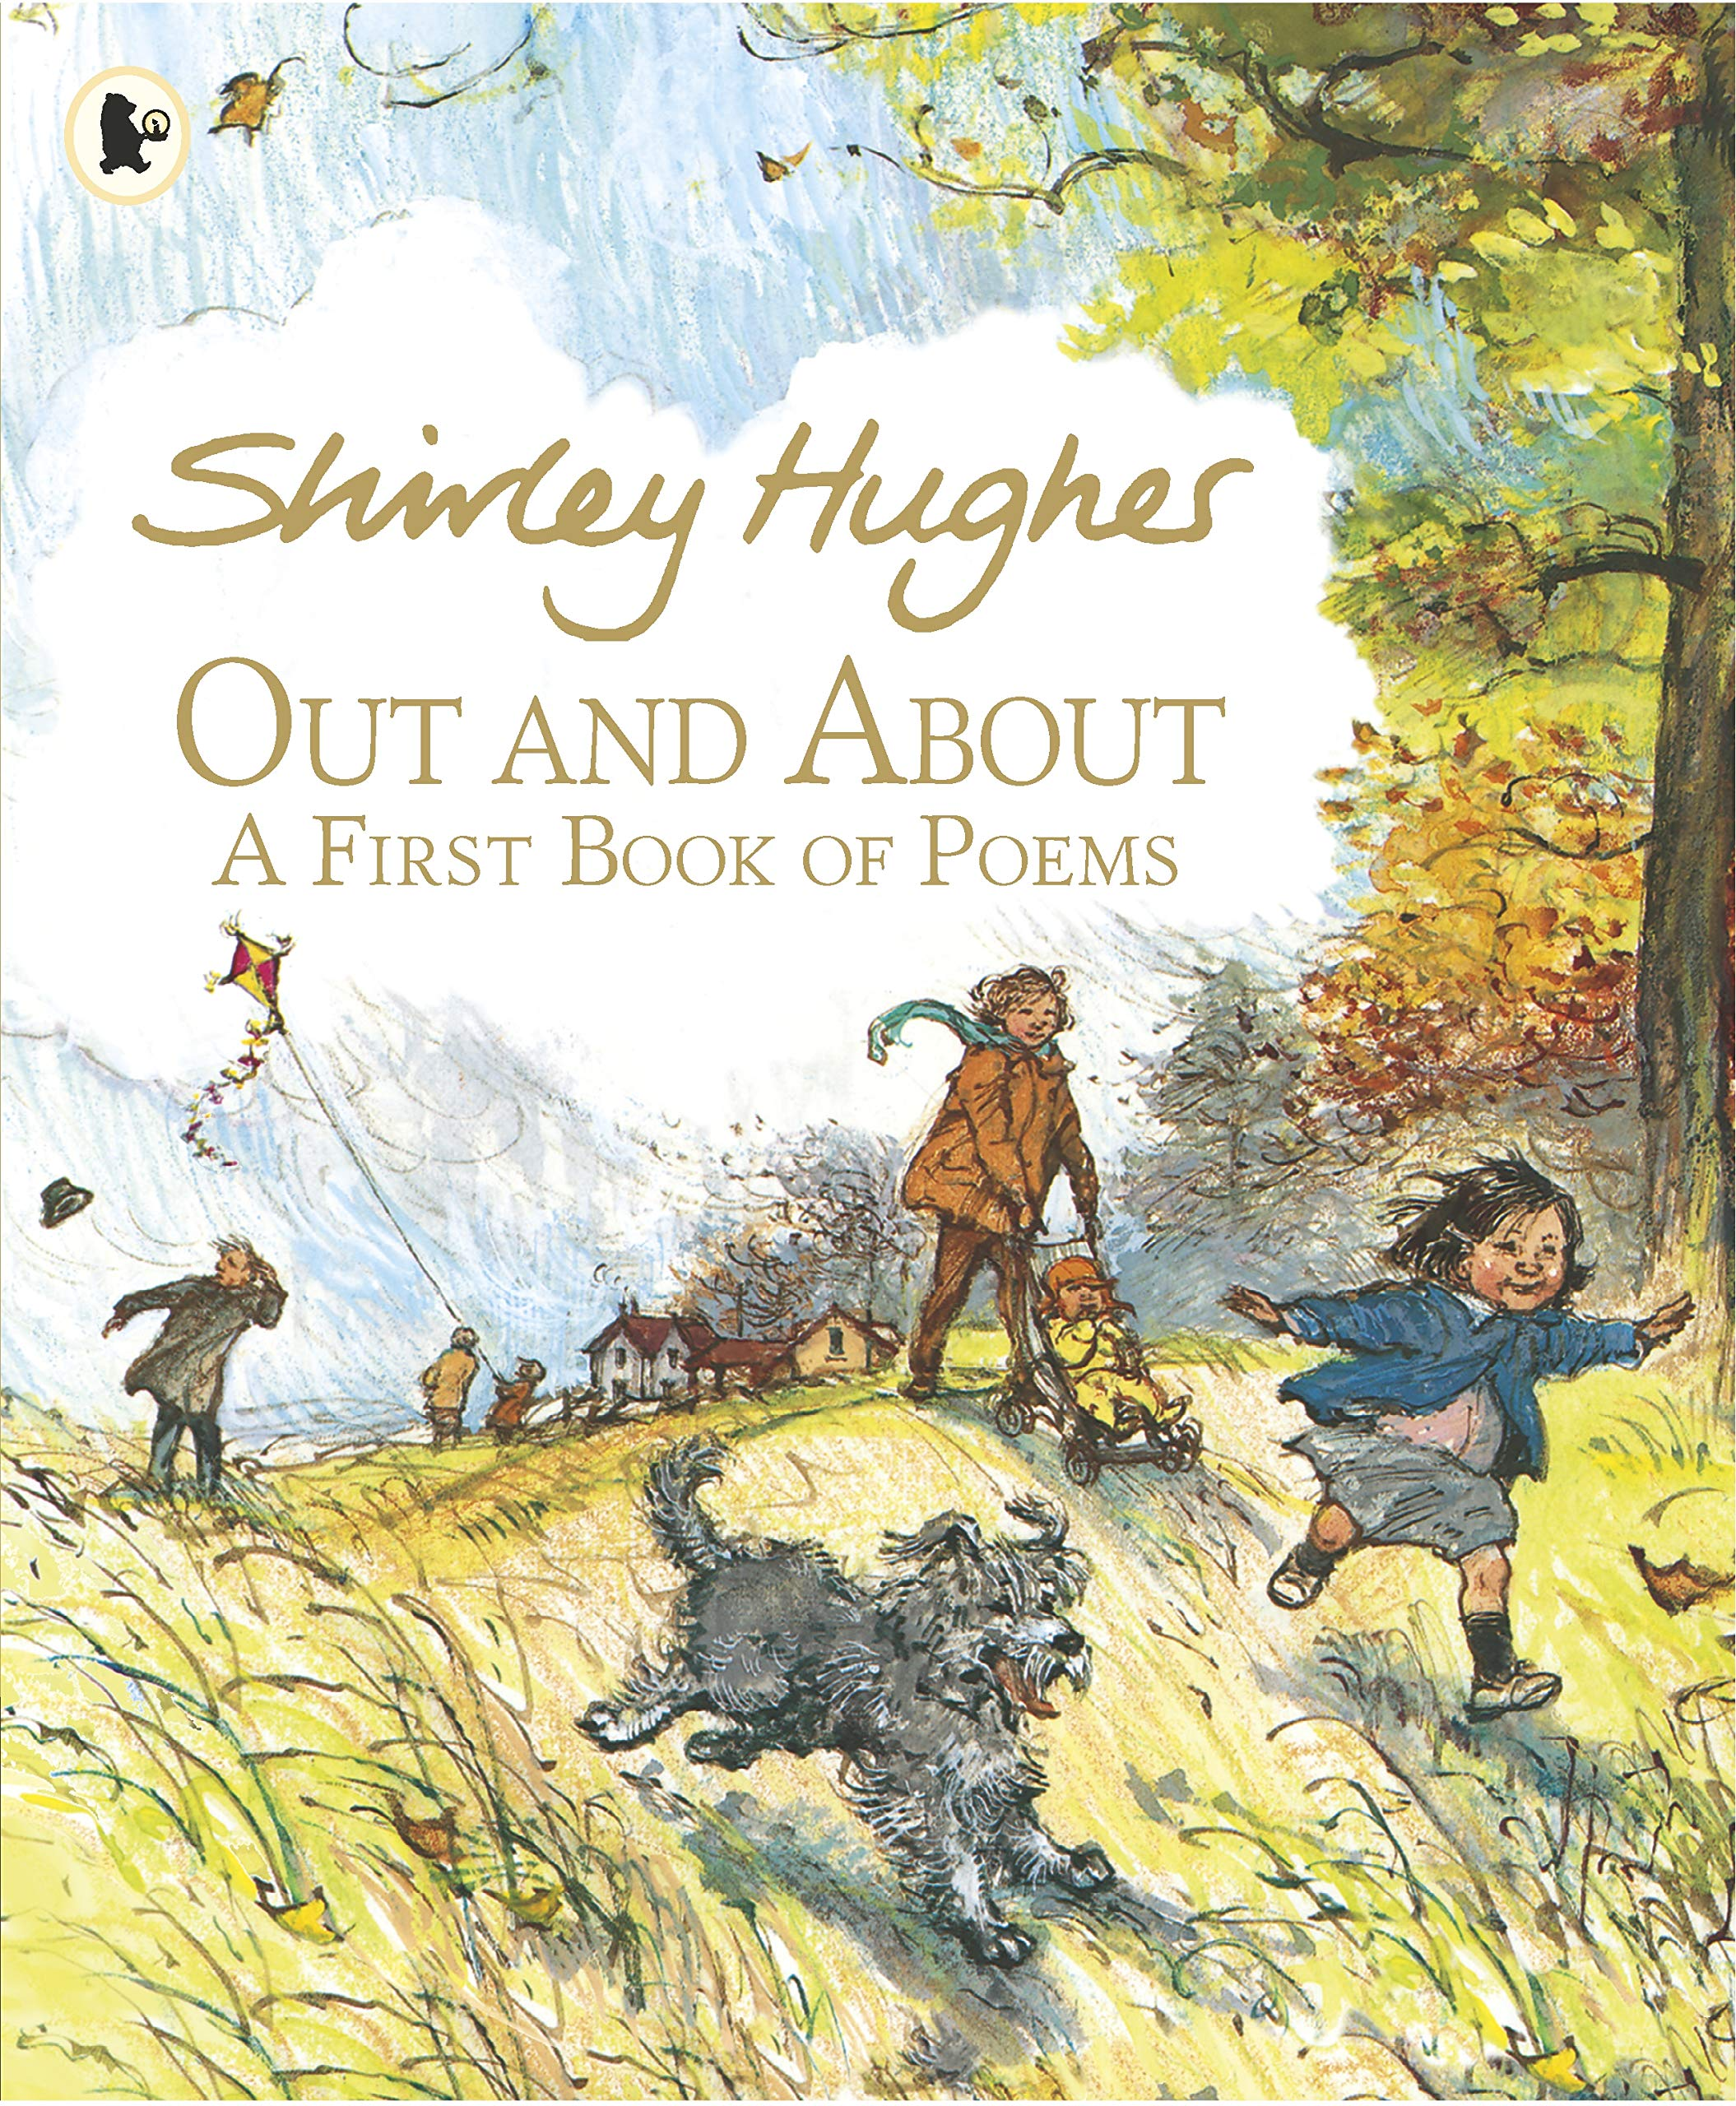 Out and About: A First Book of Poems: 1: Amazon.co.uk: Hughes, Shirley,  Hughes, Shirley: Books